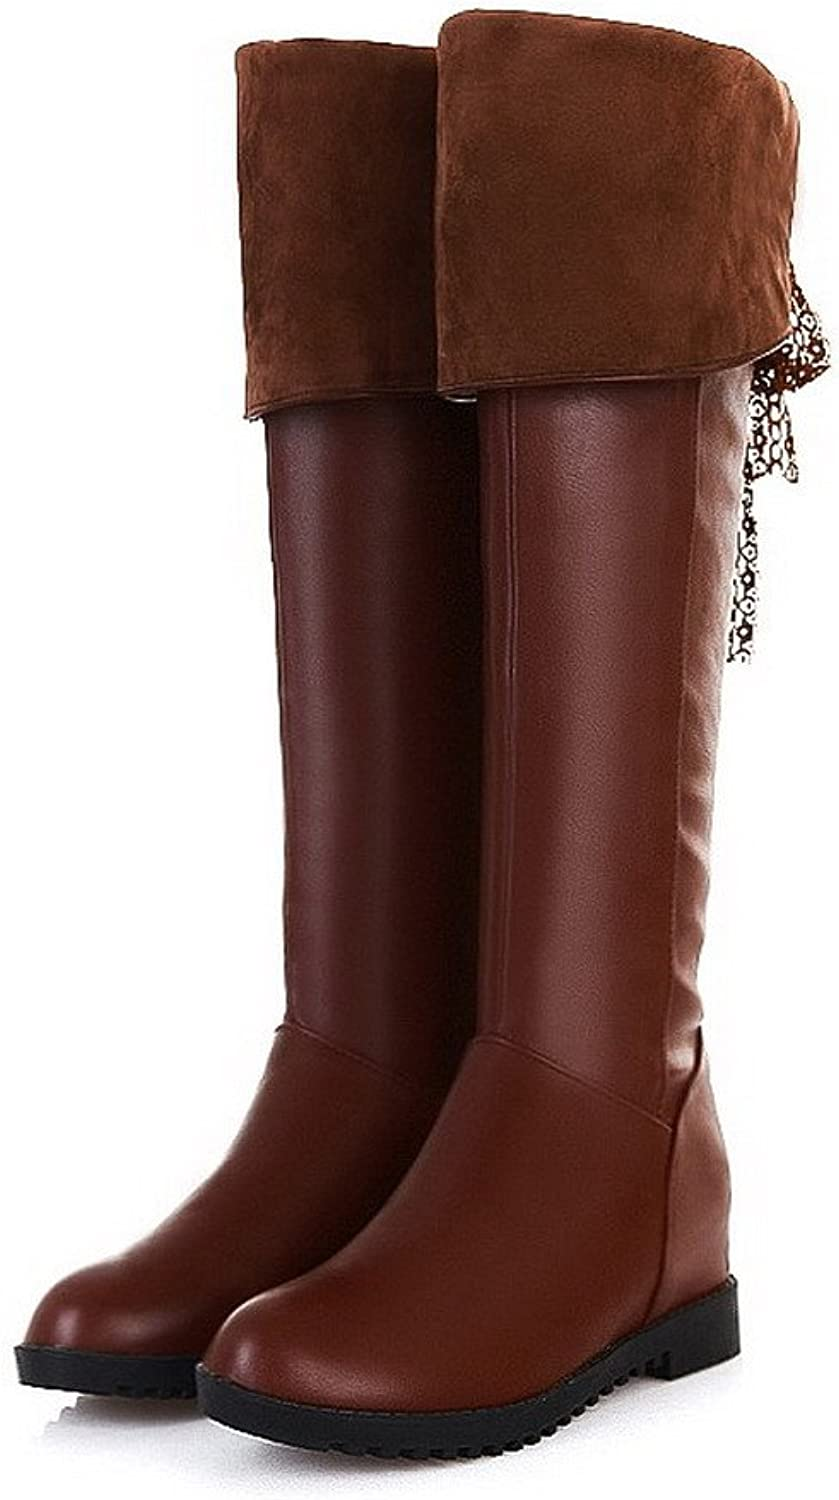 AmoonyFashion Womens Closed Round Toe Kitten Heels PU Soft Material PU Solid Boots with Heighten Inside, Brown, 7.5 B(M) US